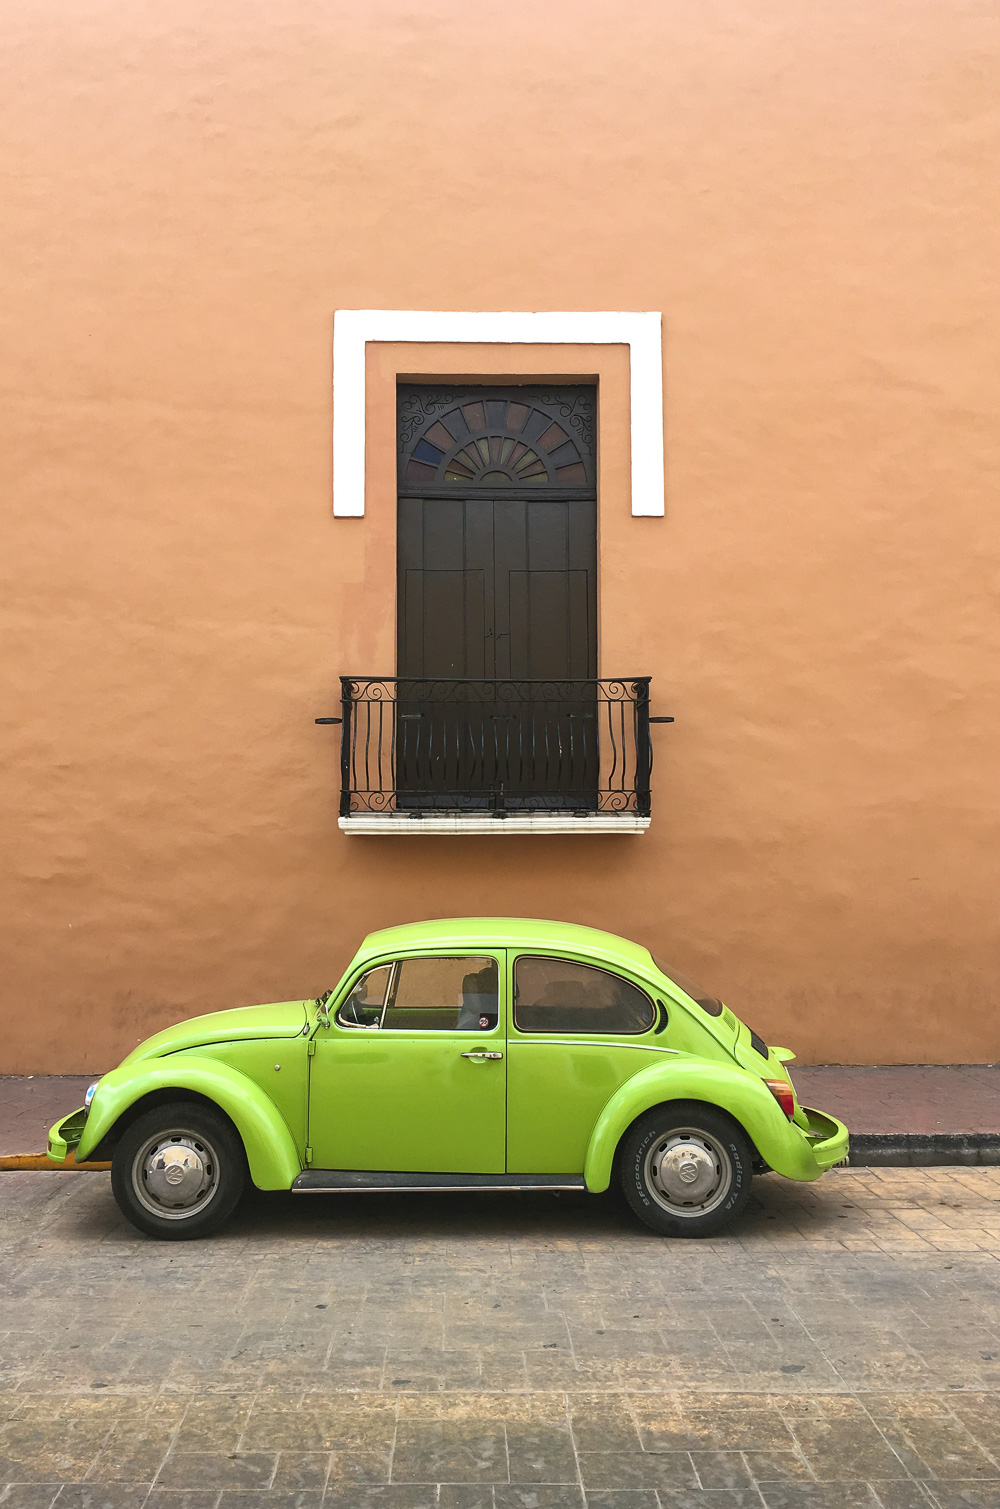 Green Volkswagen Beetle in front of orange colonial building